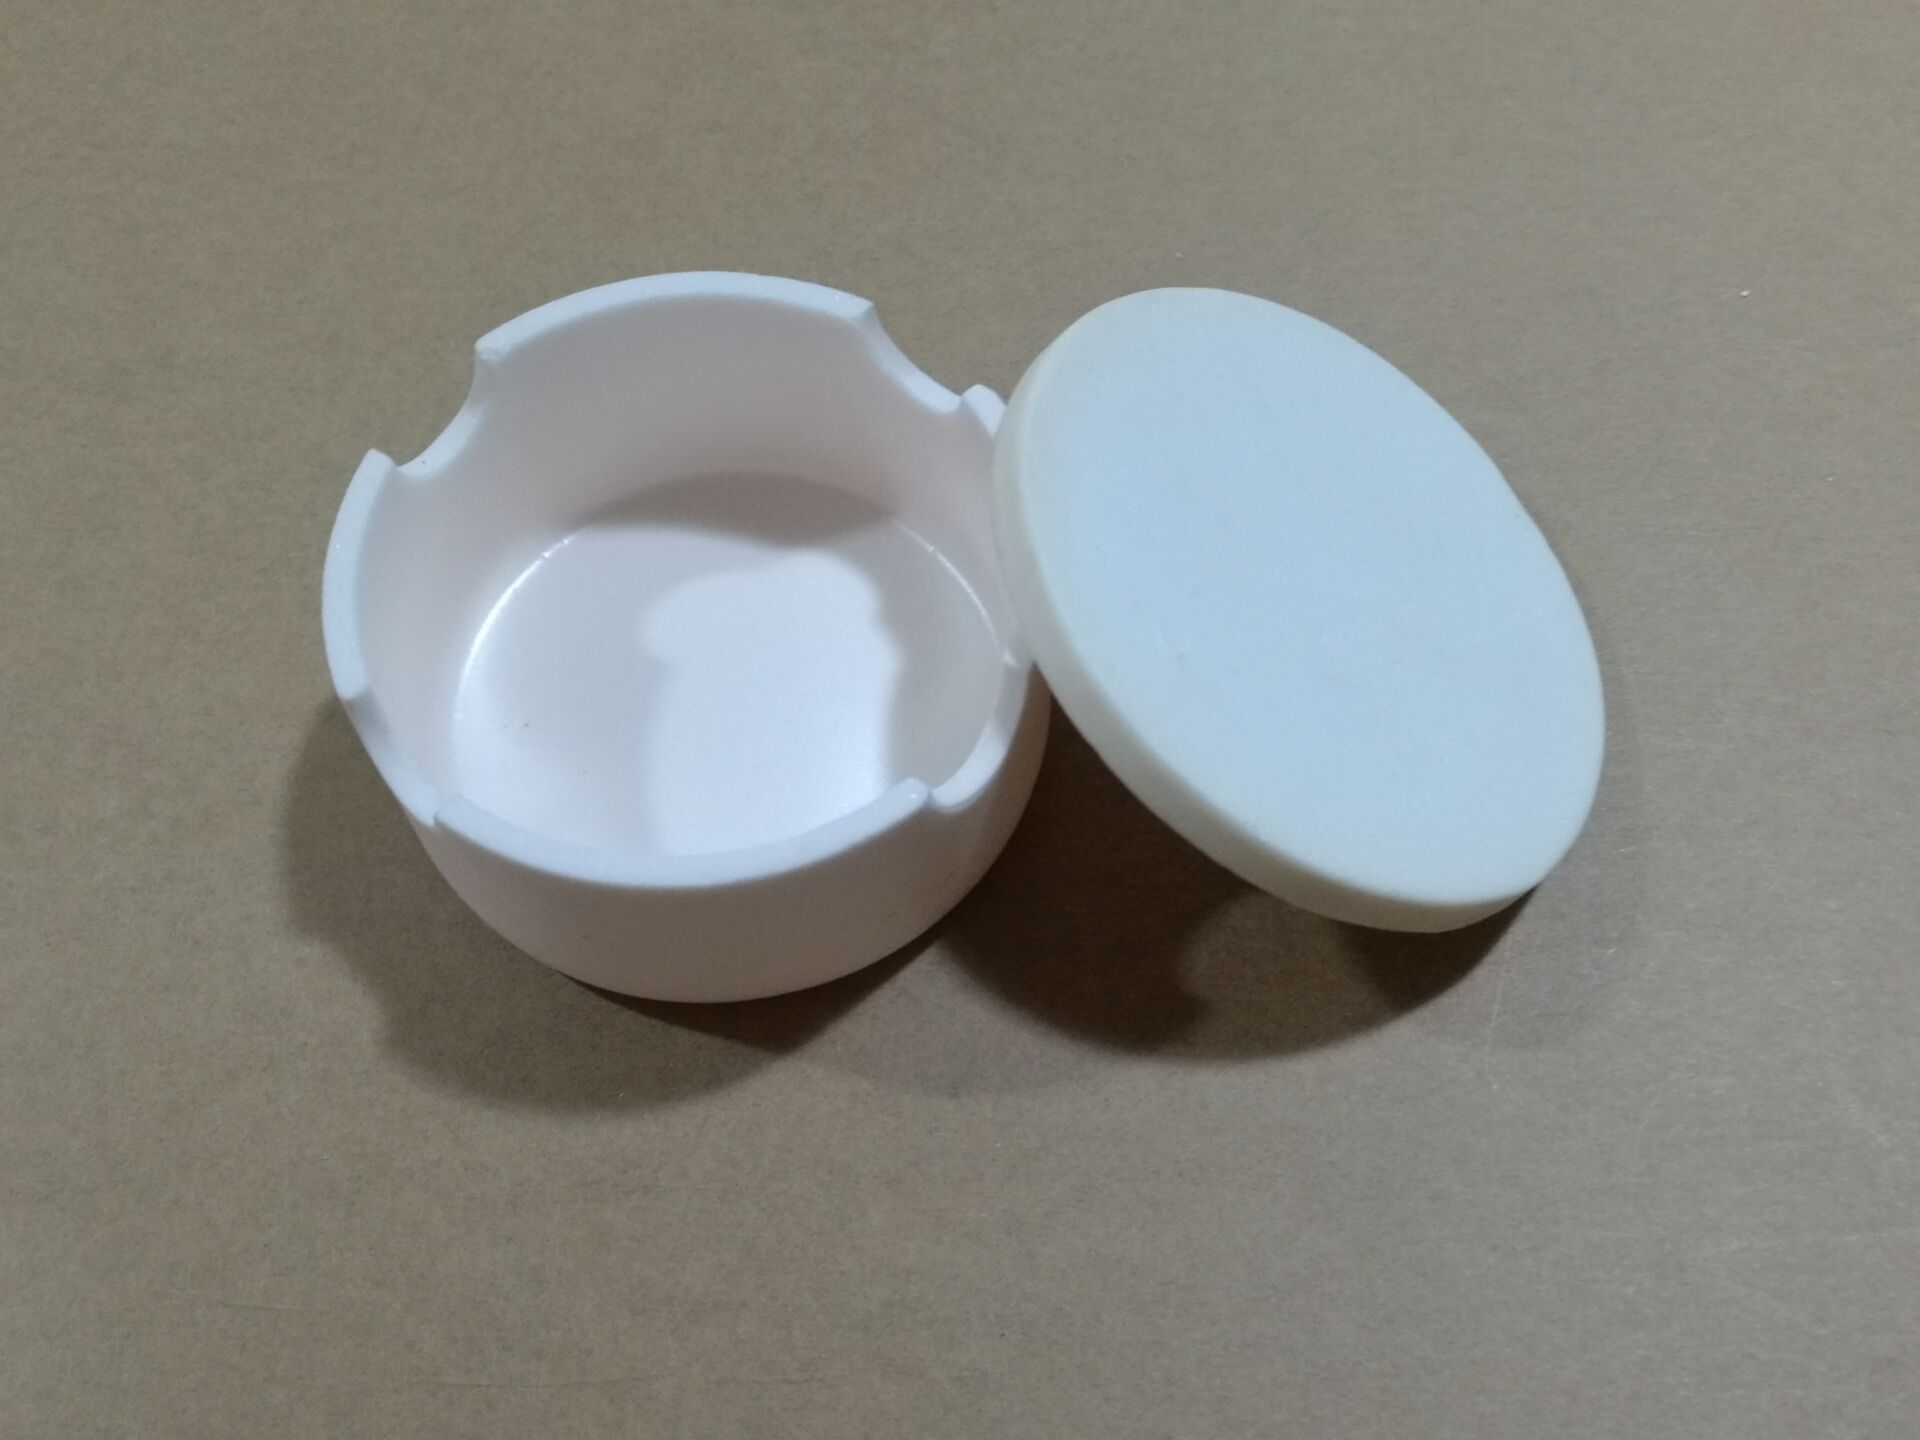 Sinter Bowl,90mm x35mm,With Lid,Grooved side